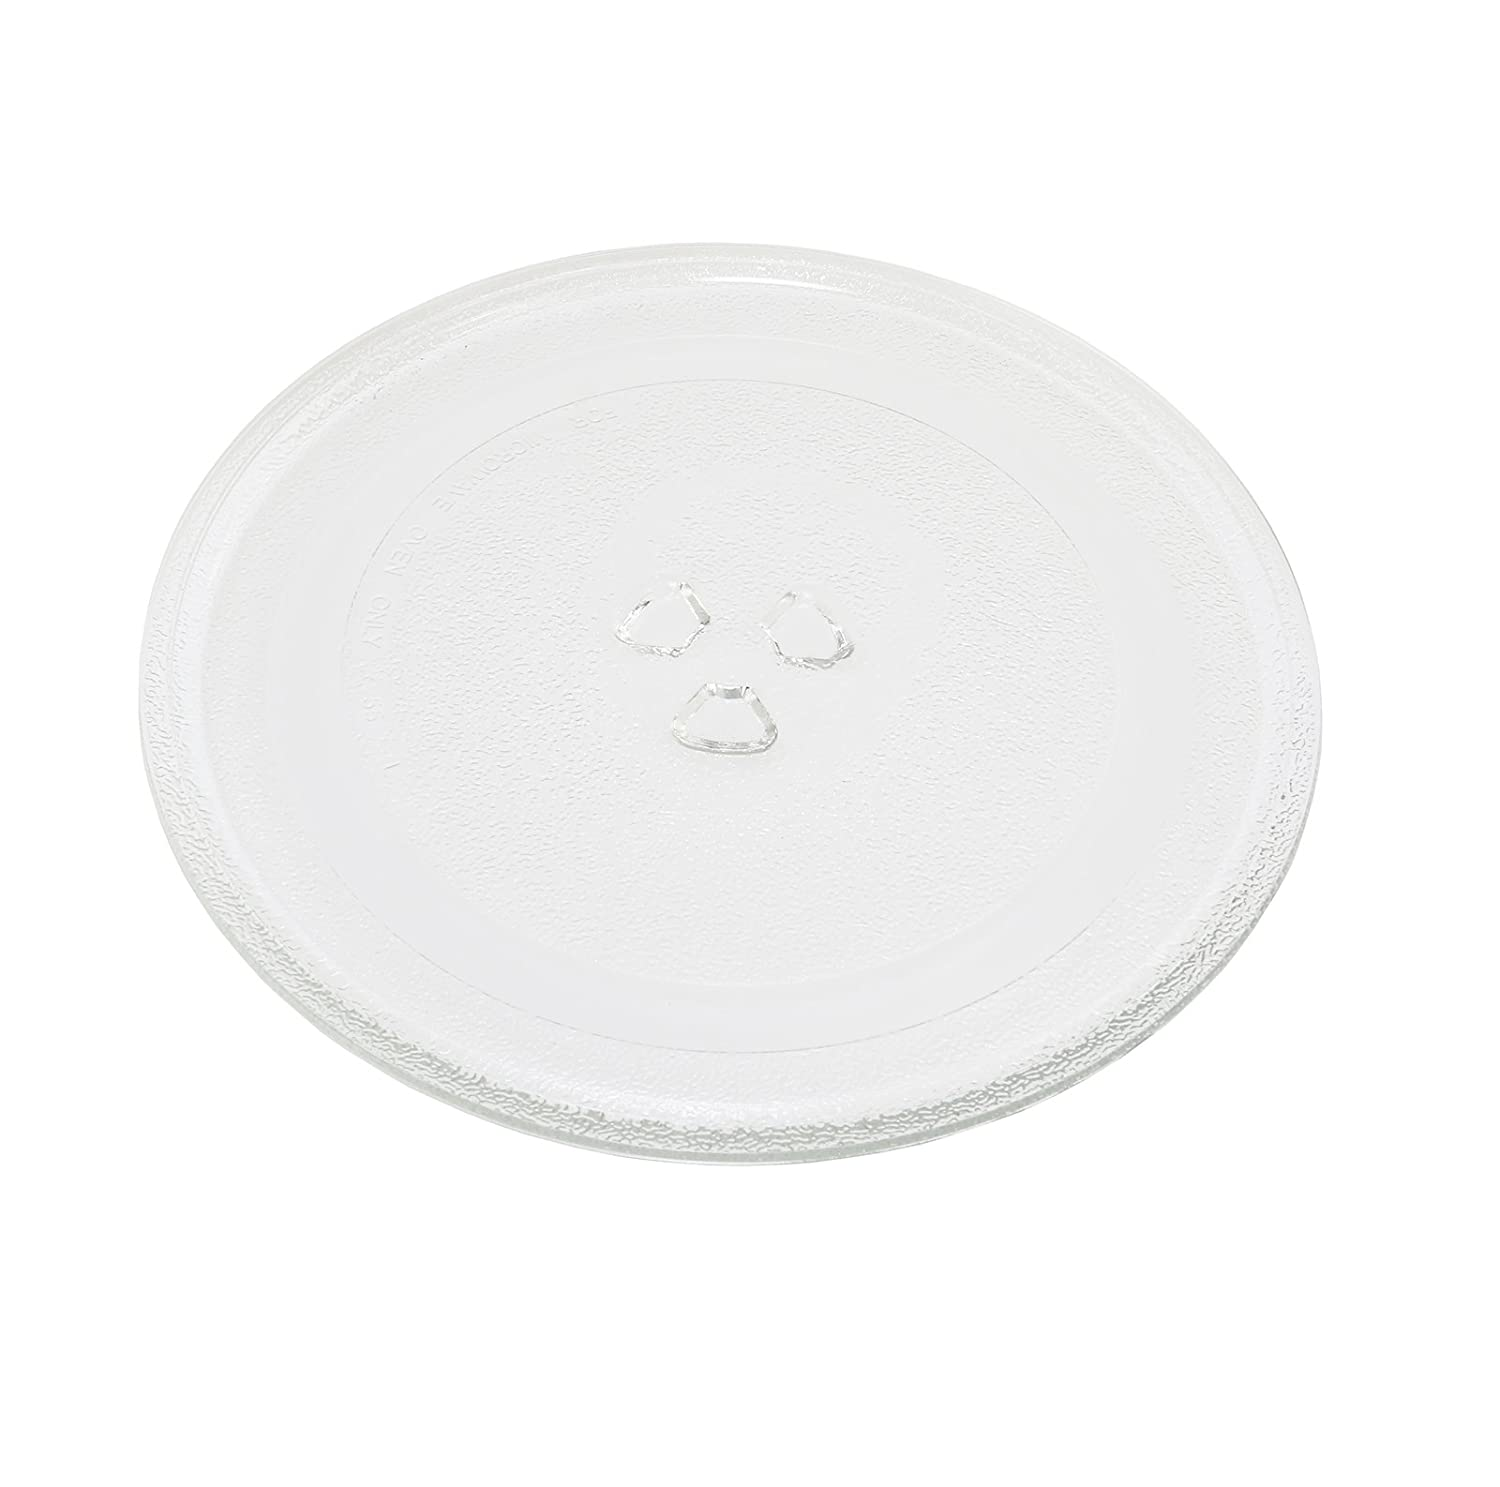 First4Spares Glass Plate For Proline Microwave Ovens